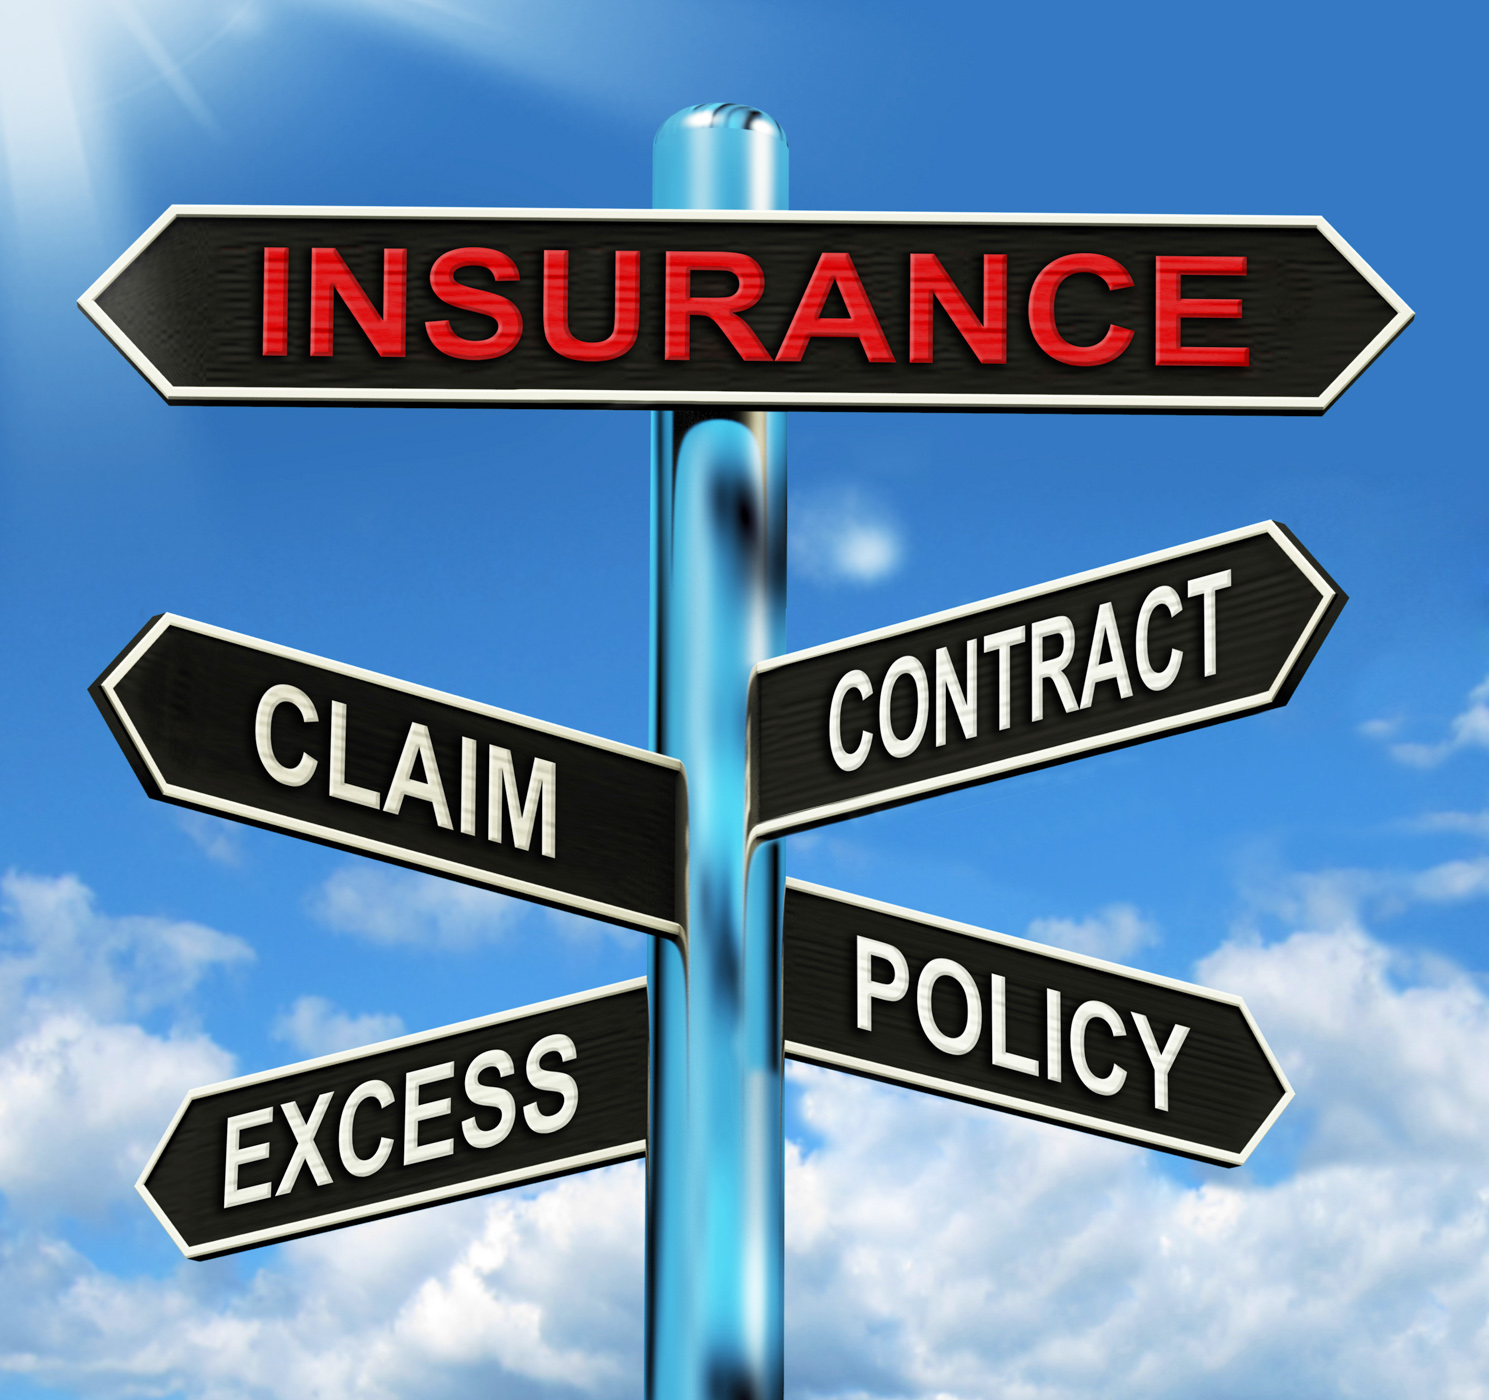 Insurance signpost mean claim excess contract and policy photo